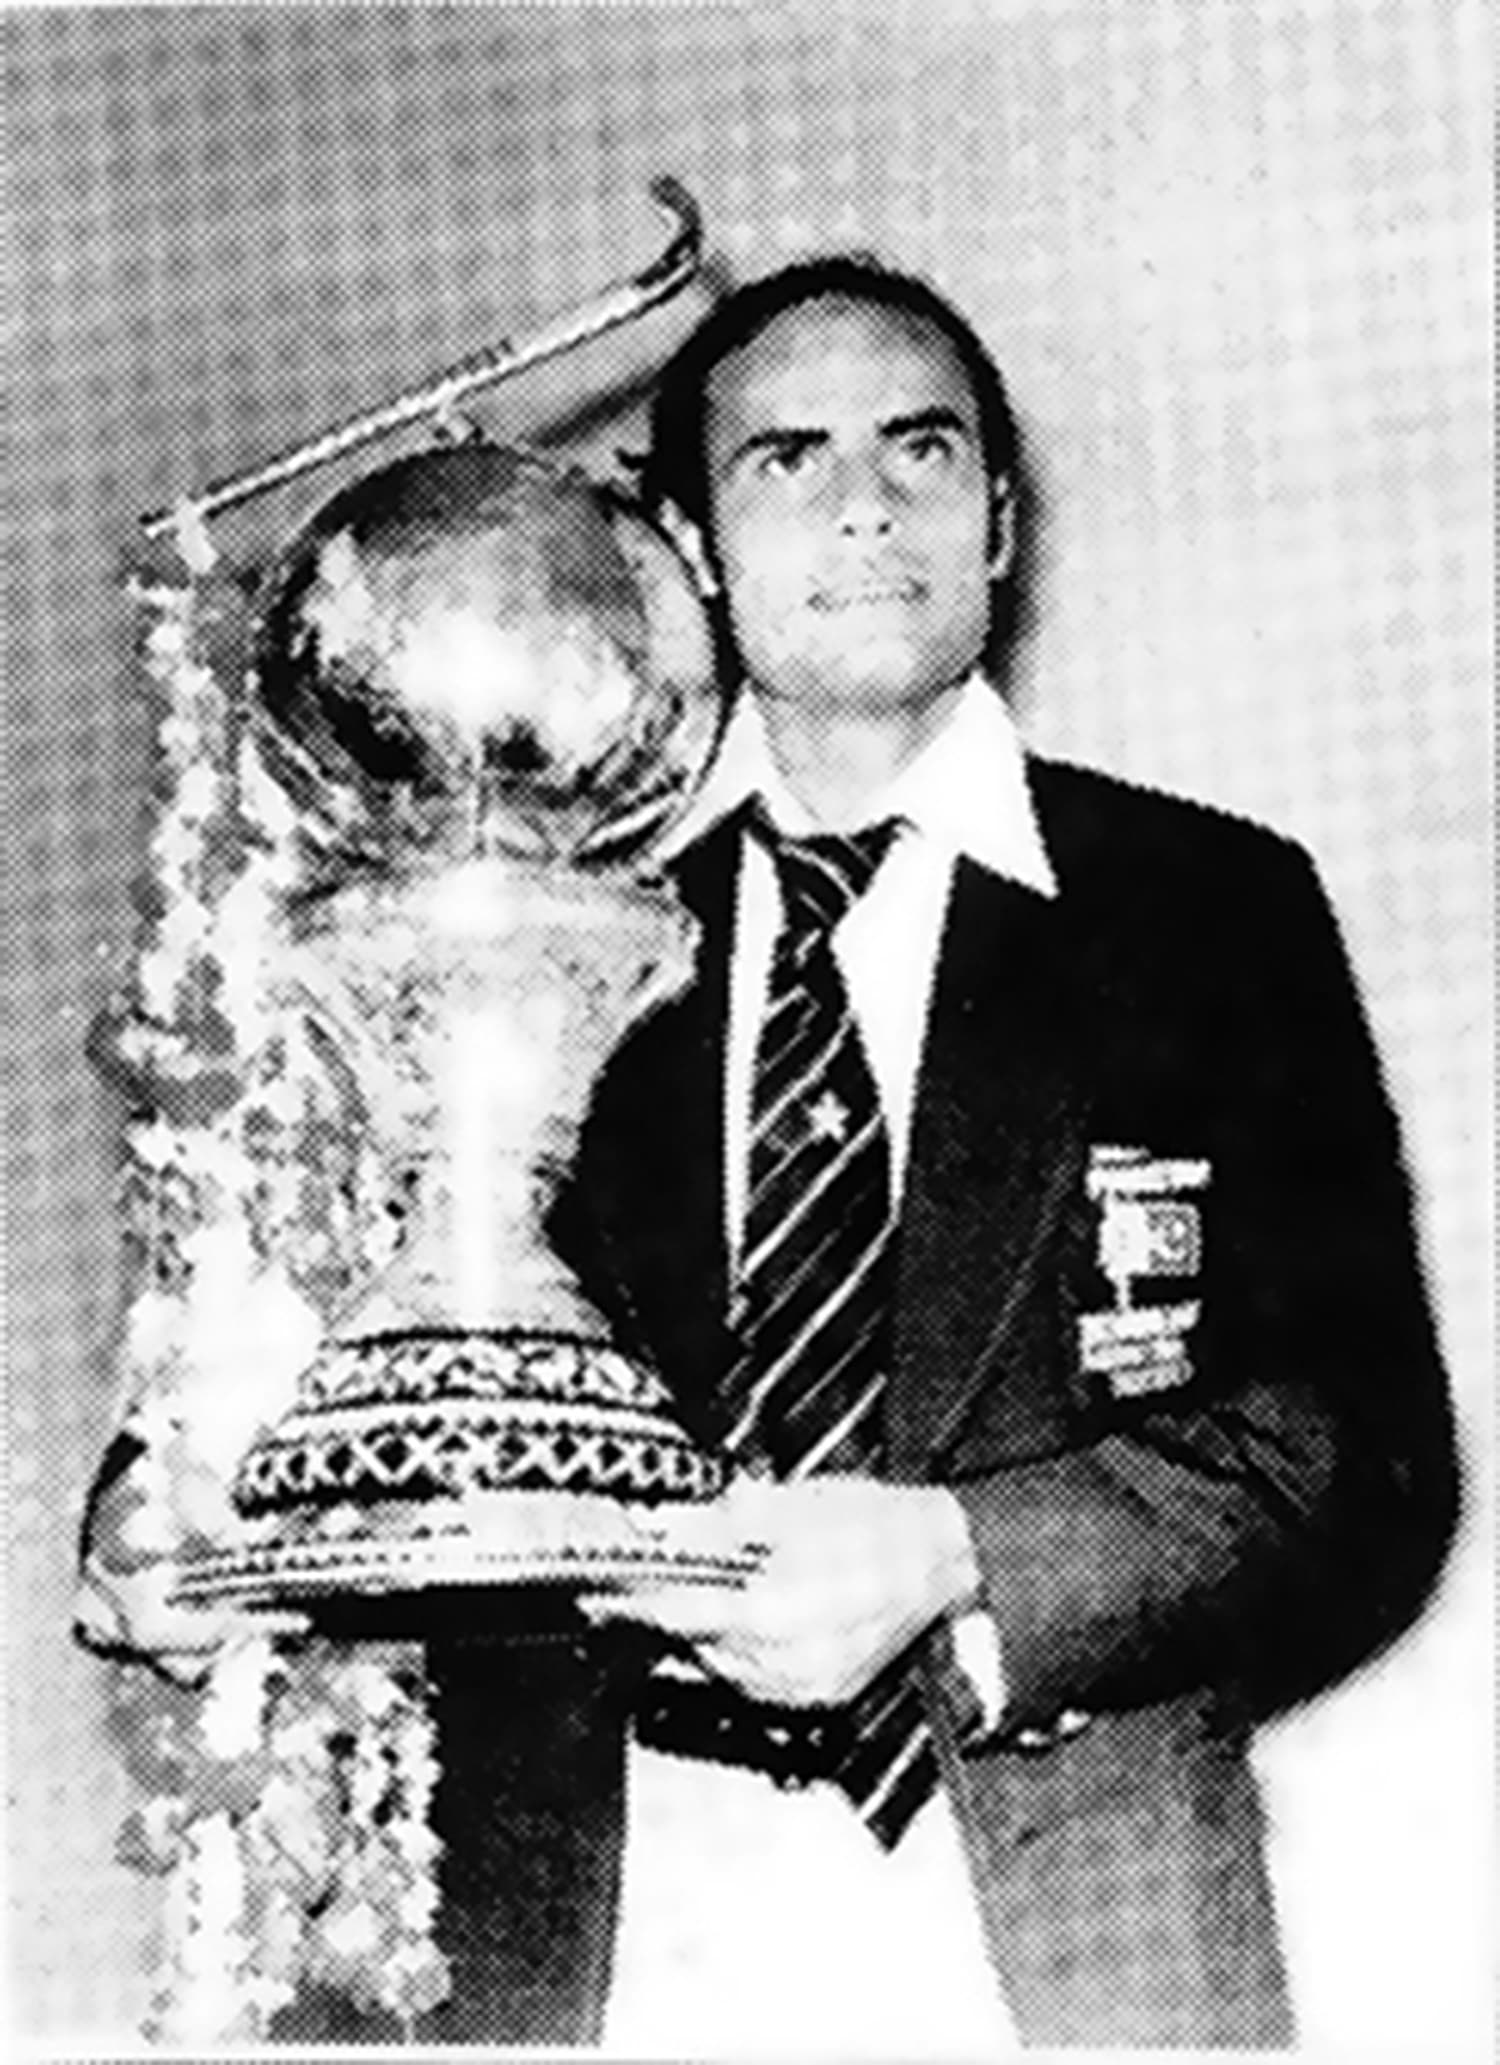 Pakistan hockey captain Islauddin with the 1978 Hockey World Cup. -- Photo: Akhbar-e-Watan